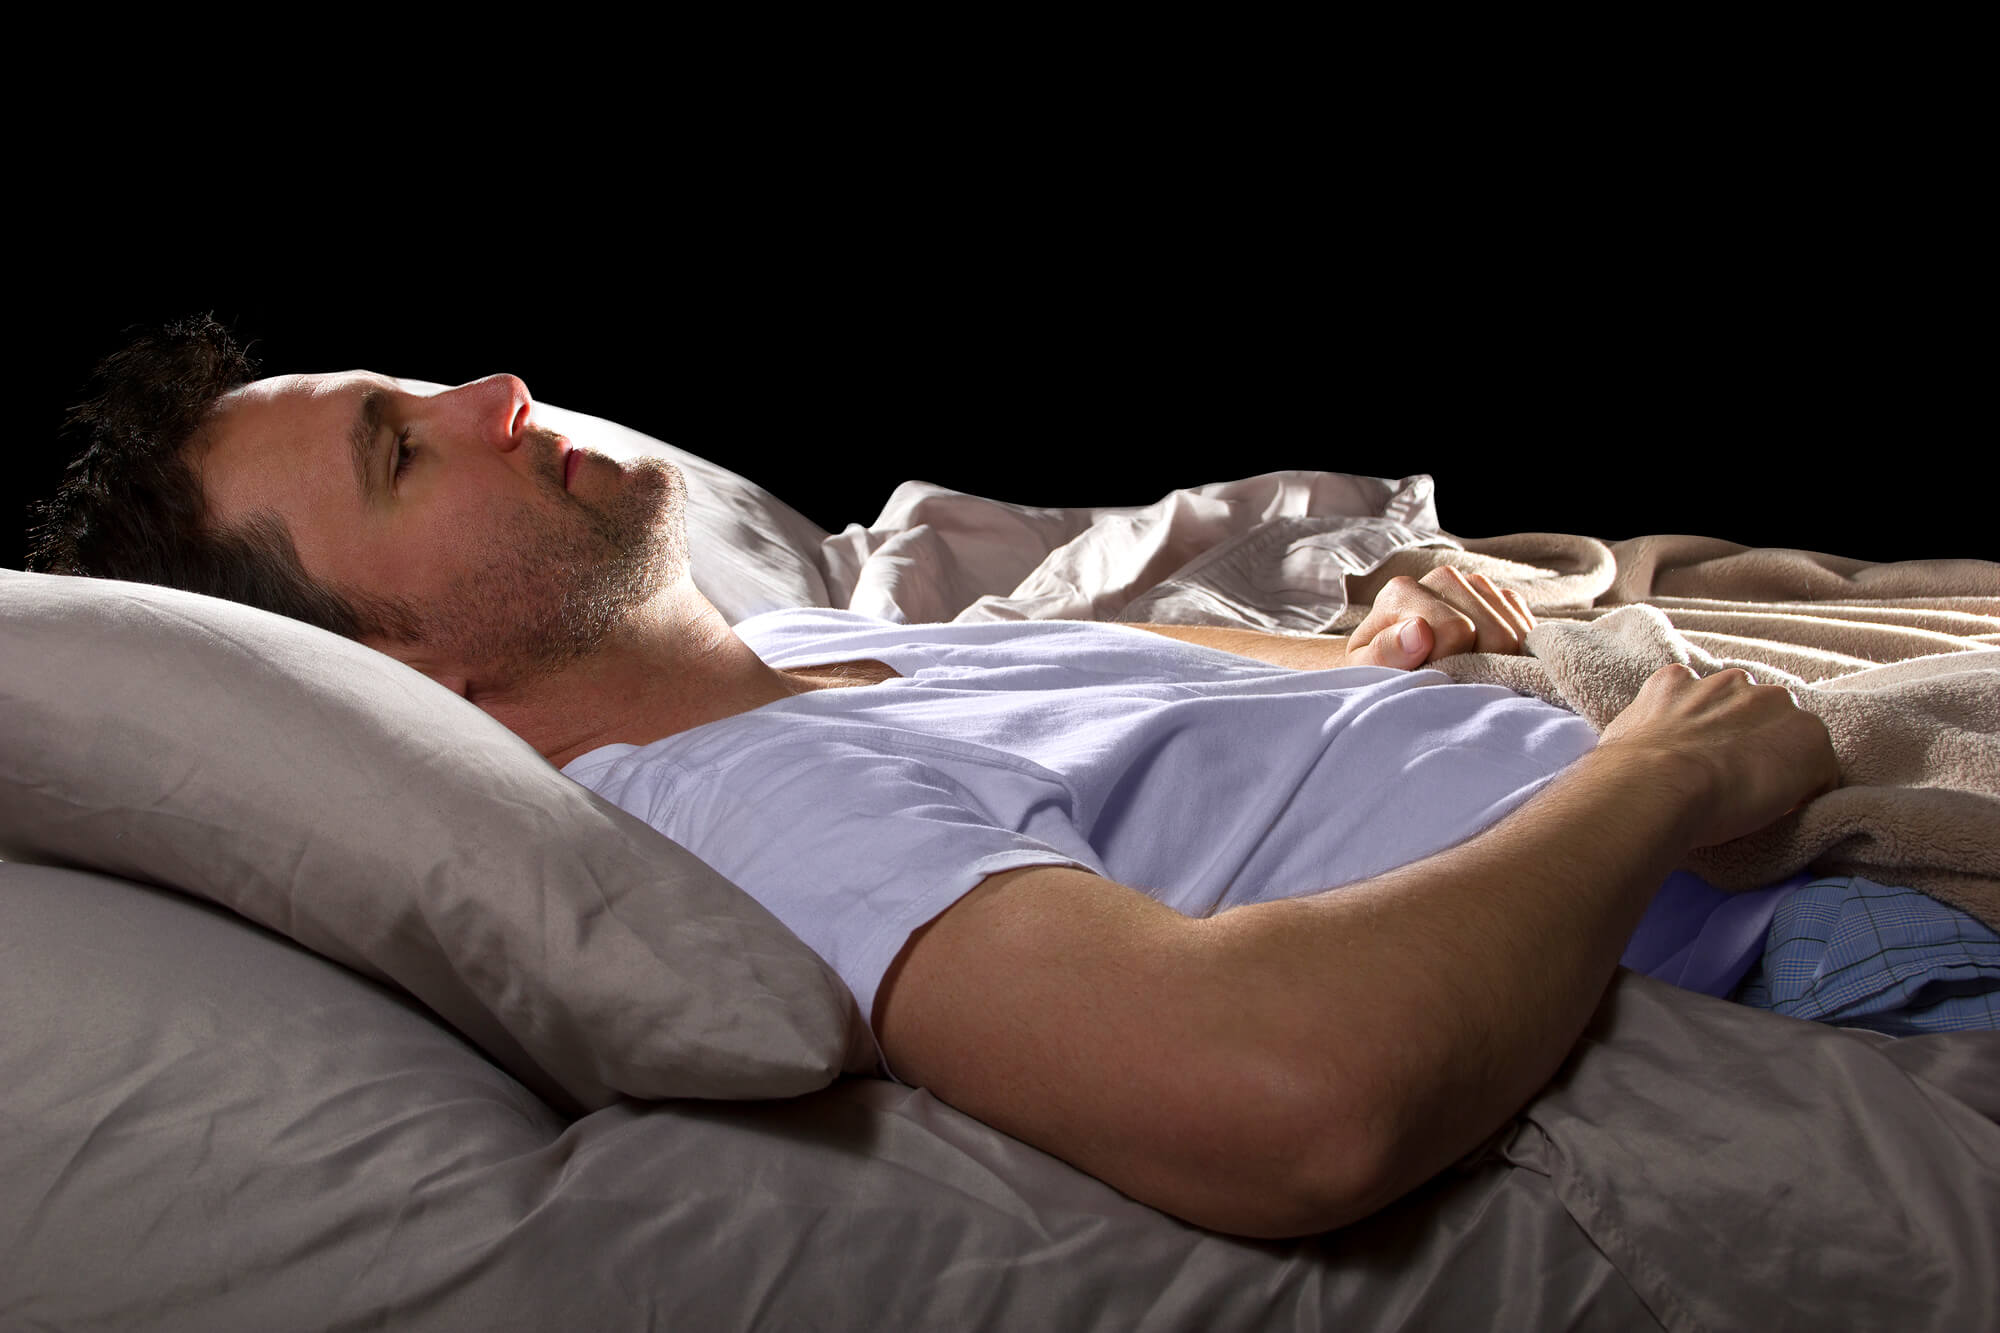 Man laying in bed, looking worried